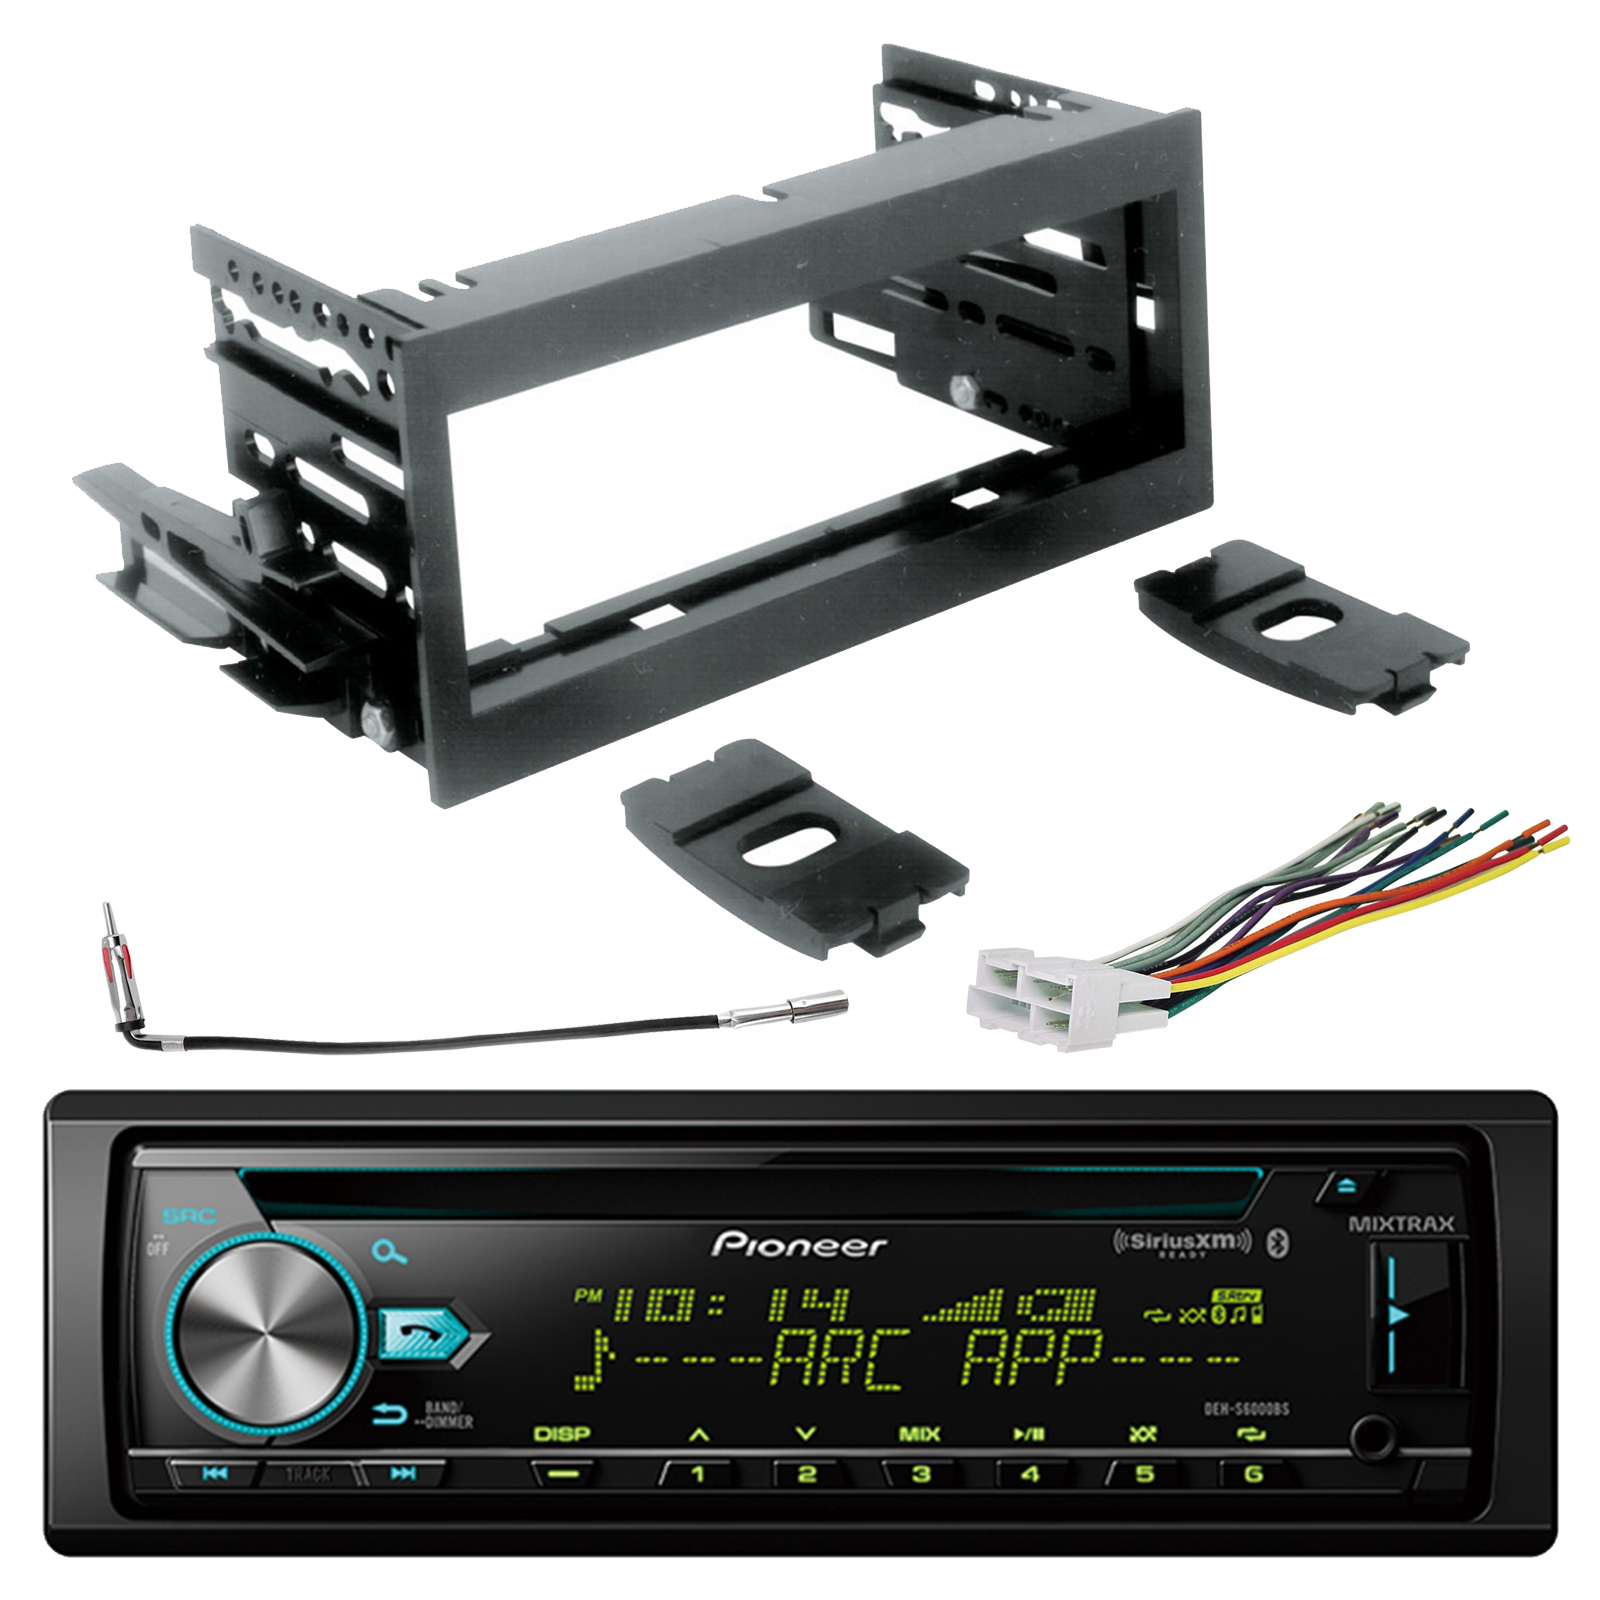 Xm Radio Wiring Harness Adapter Great Installation Of Diagram Satellite Pioneer Single Din Bluetooth Cd Siriusxm Ready Stereo Scosche Rh Walmart Com Aftermarket Adapters Corvette